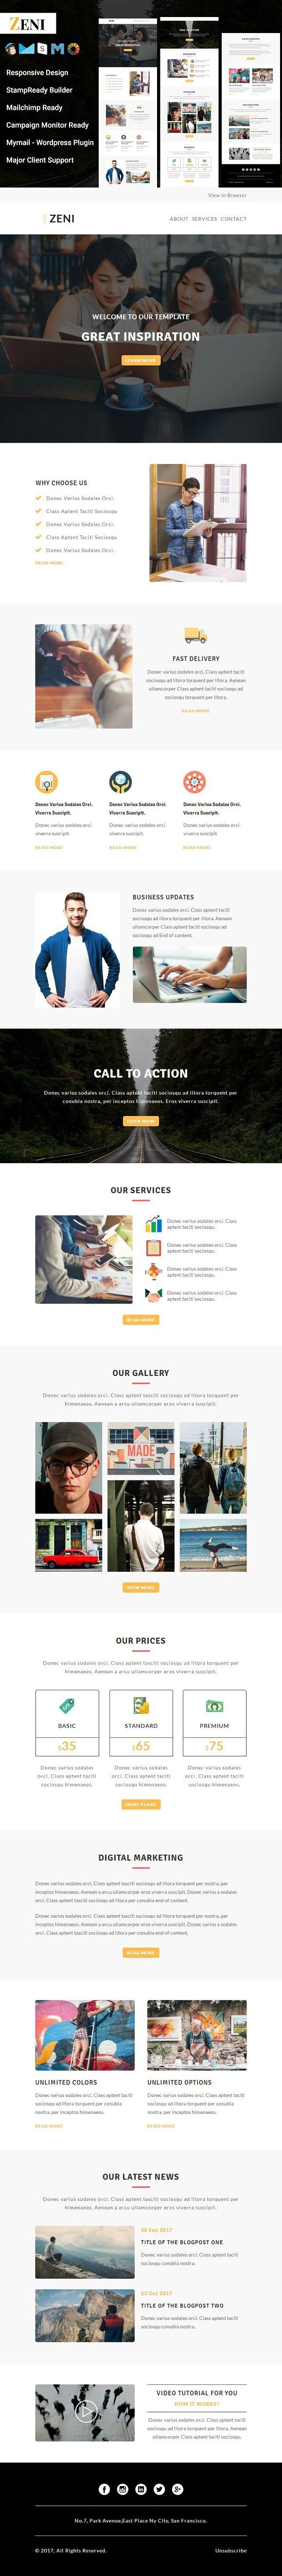 Zeni - Responsive Email Template. Email Templates